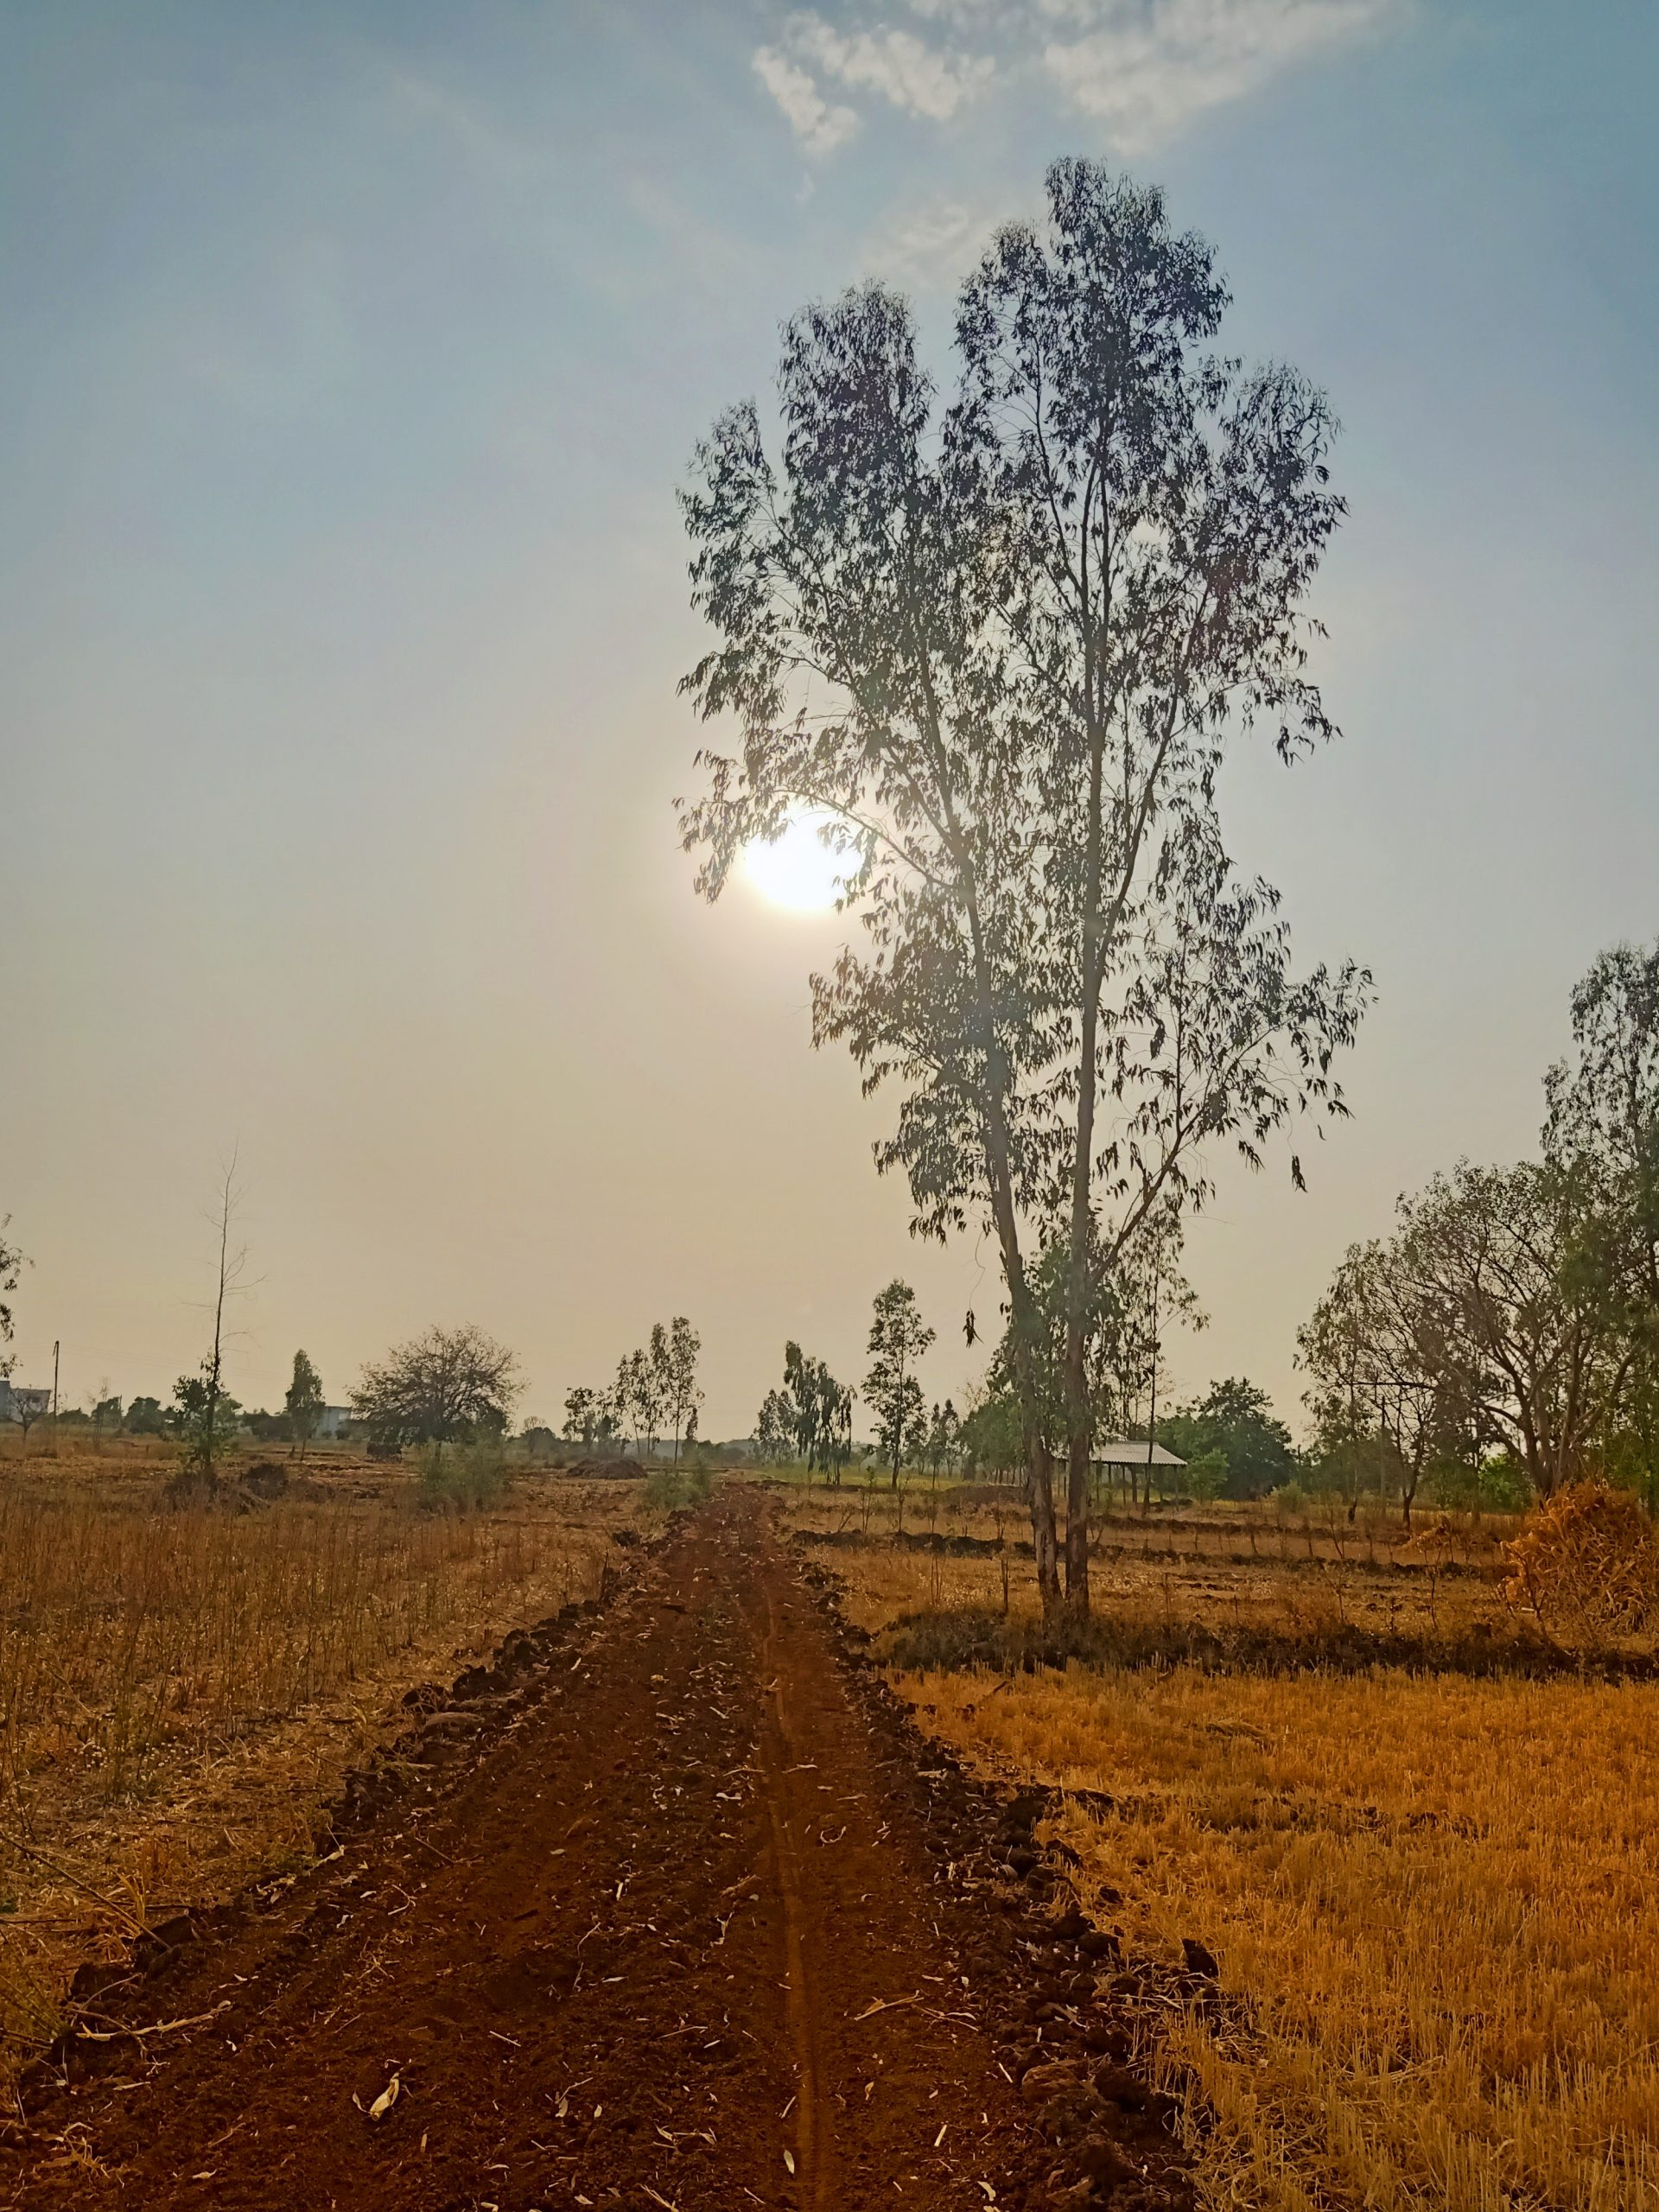 Agriculture land and a tree